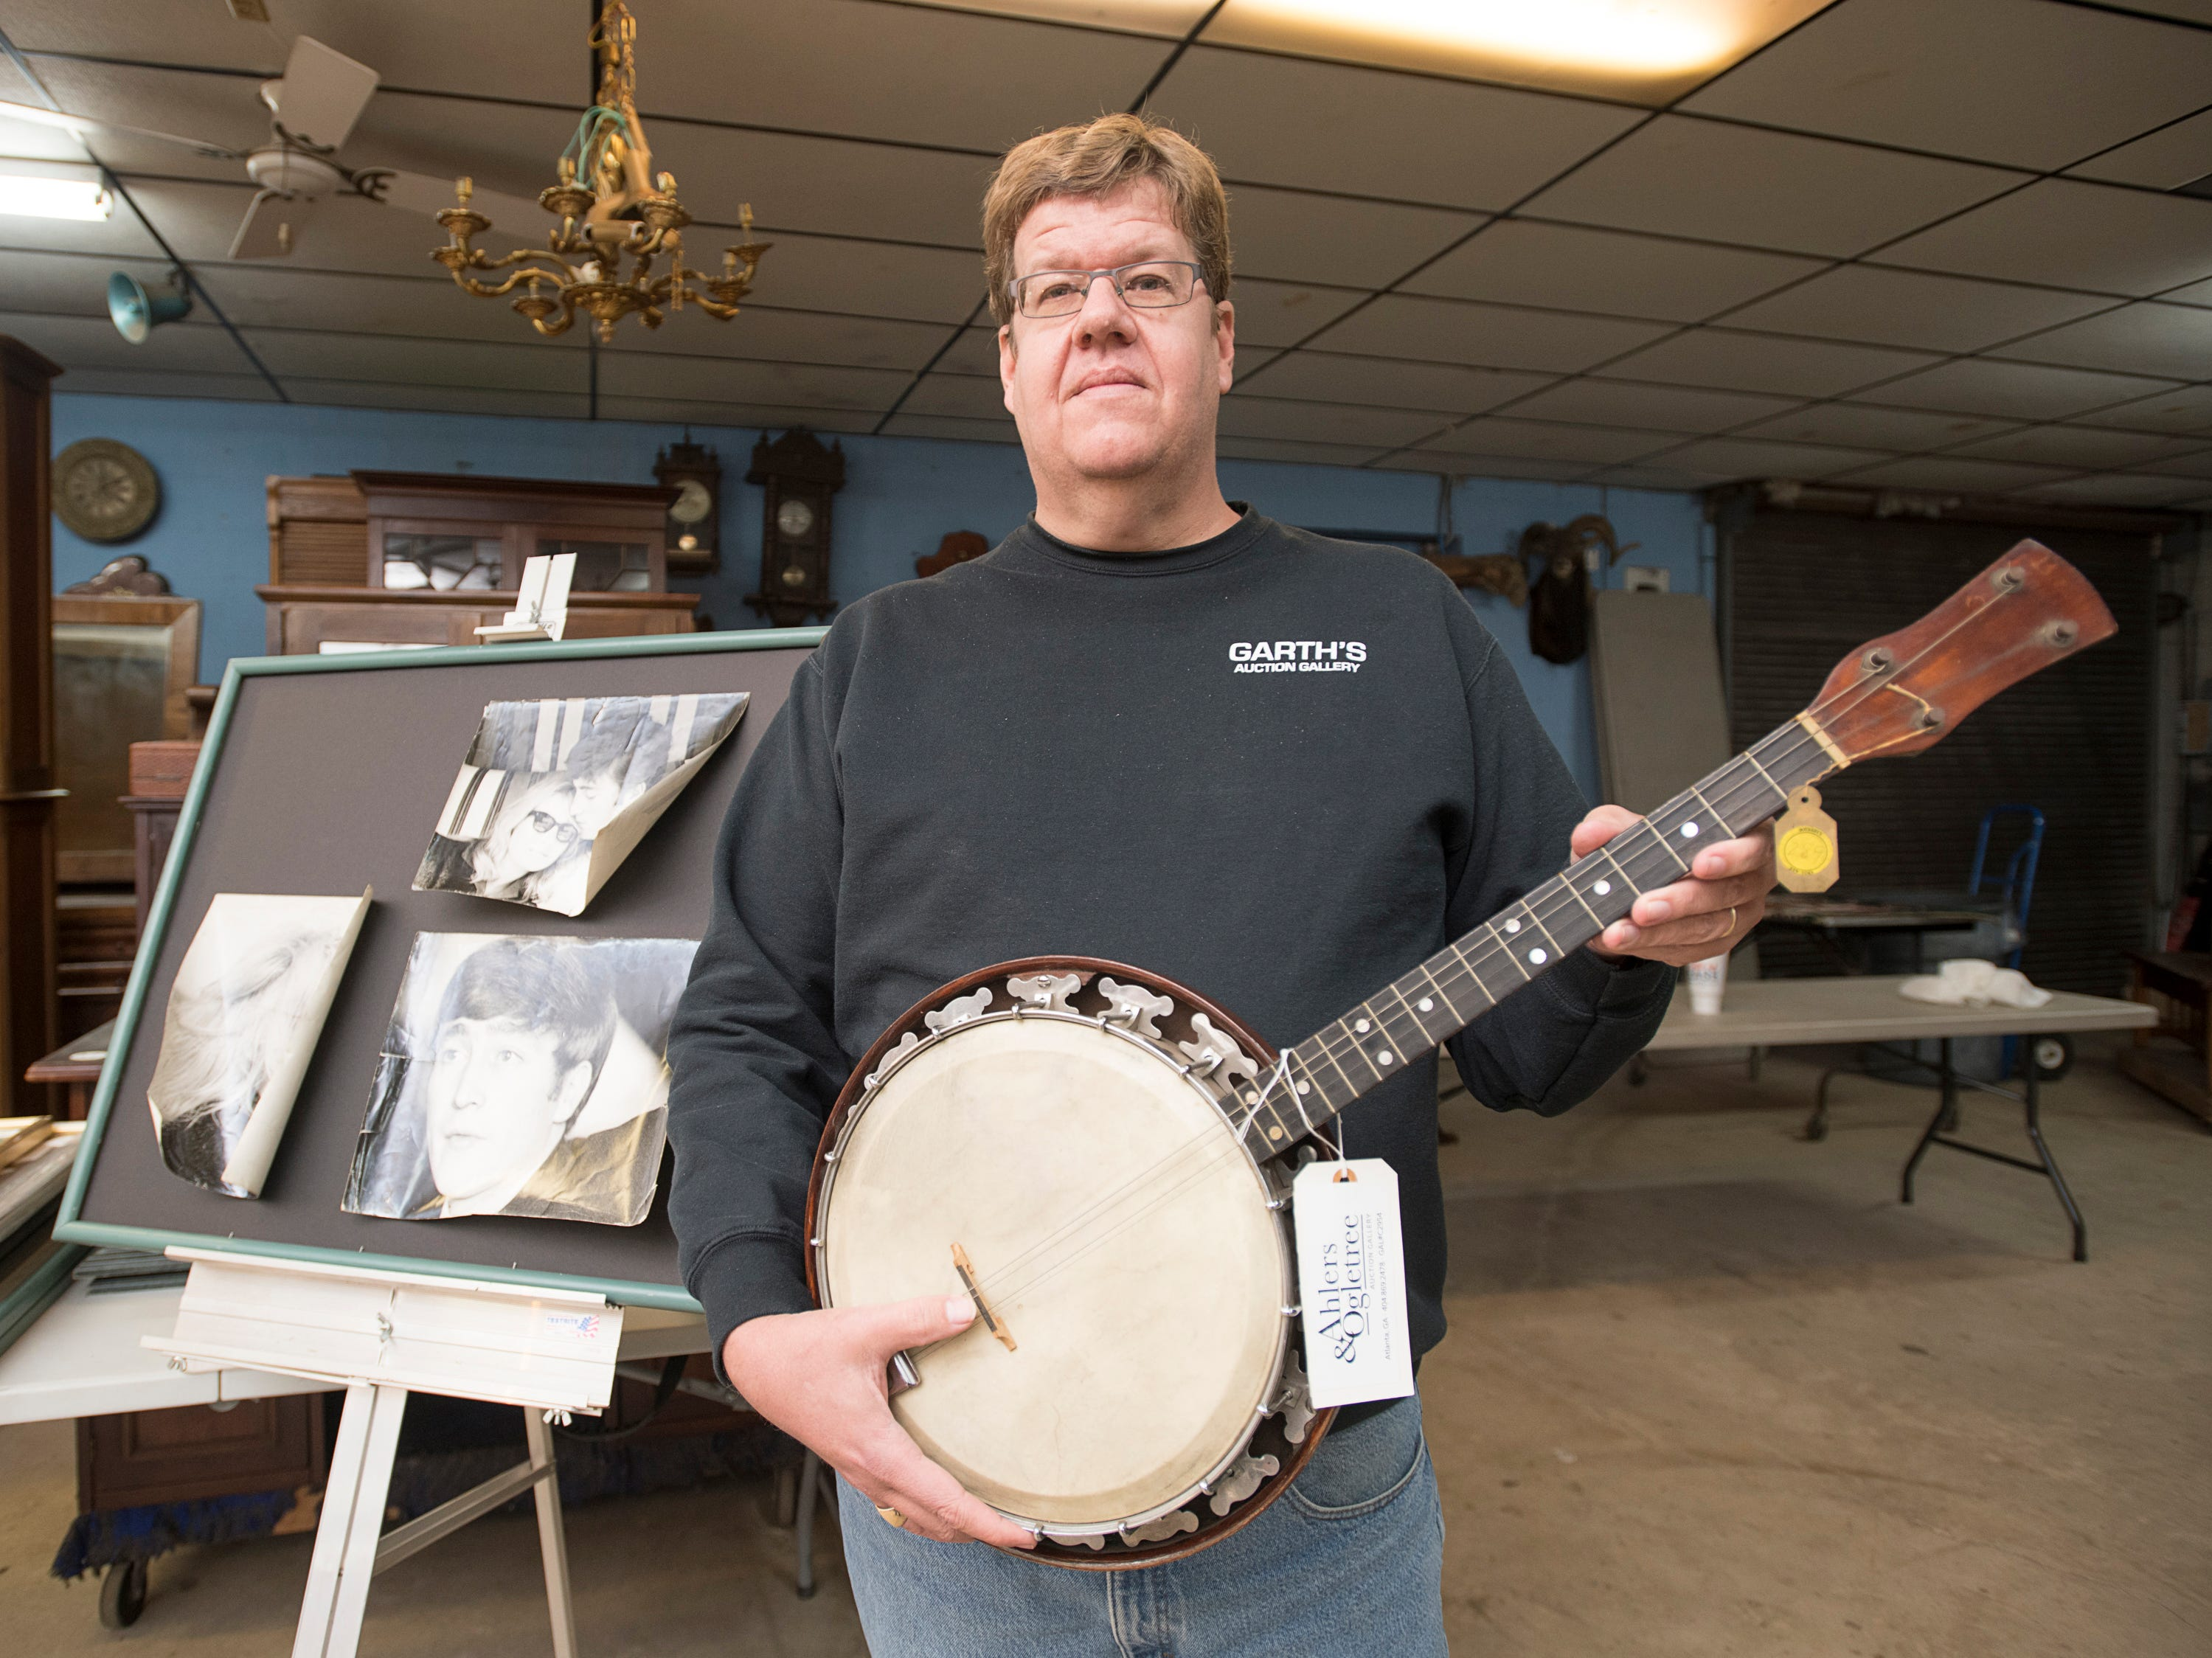 Owner Robert Garth holds a George Harrison banjo at Garth's Auction & Antiques on Navy Boulevard in Pensacola on Wednesday, November 28, 2018.  The banjo and other items will be up for sale during their auction on Friday, November 30th.